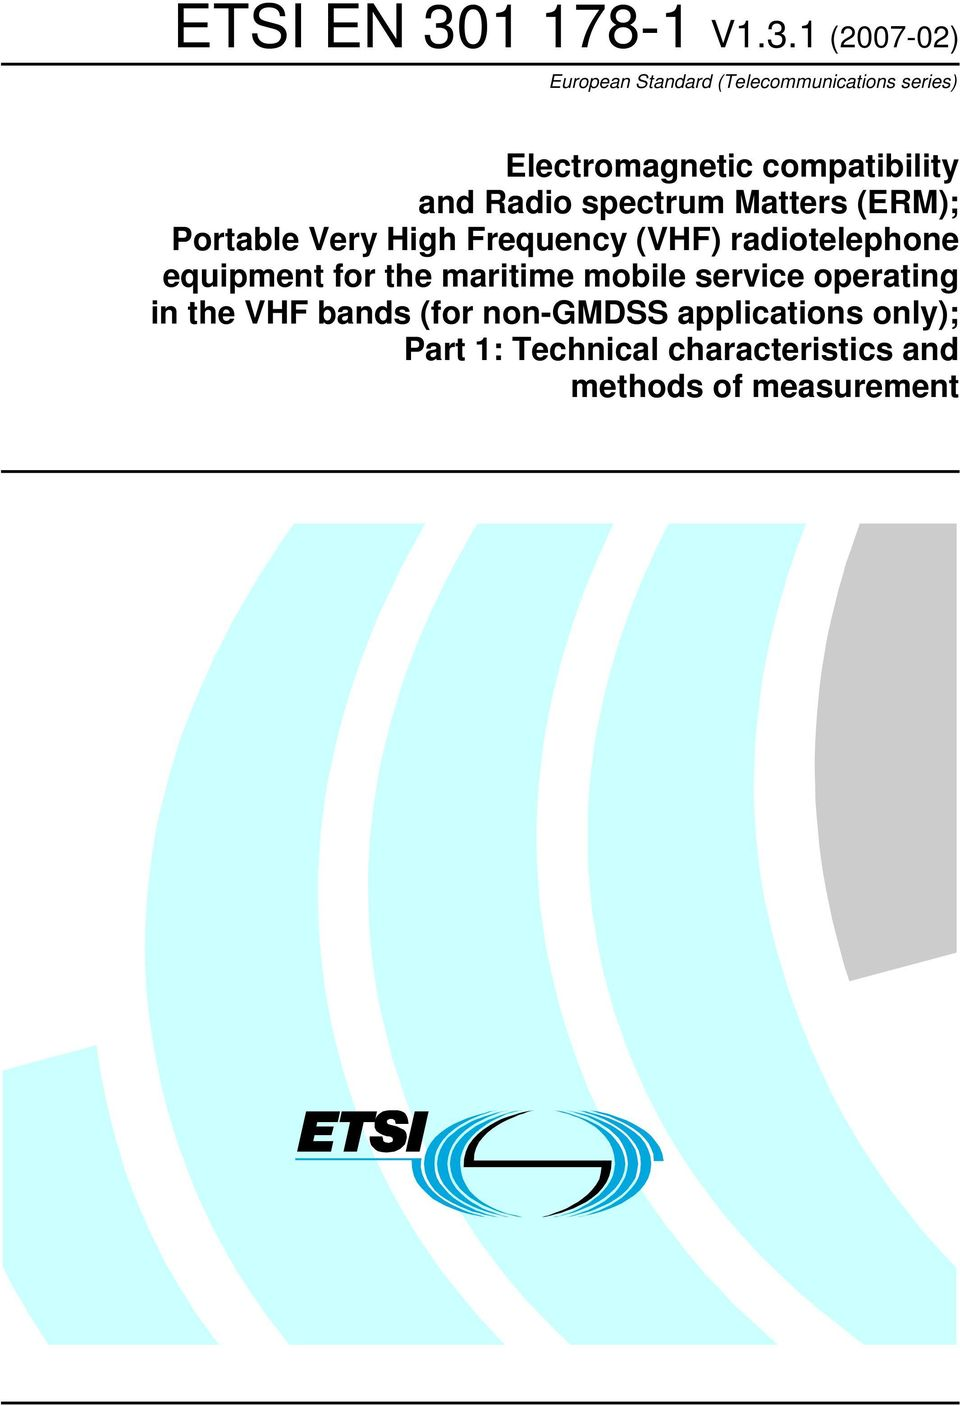 Frequency (VHF) radiotelephone equipment for the maritime mobile service operating in